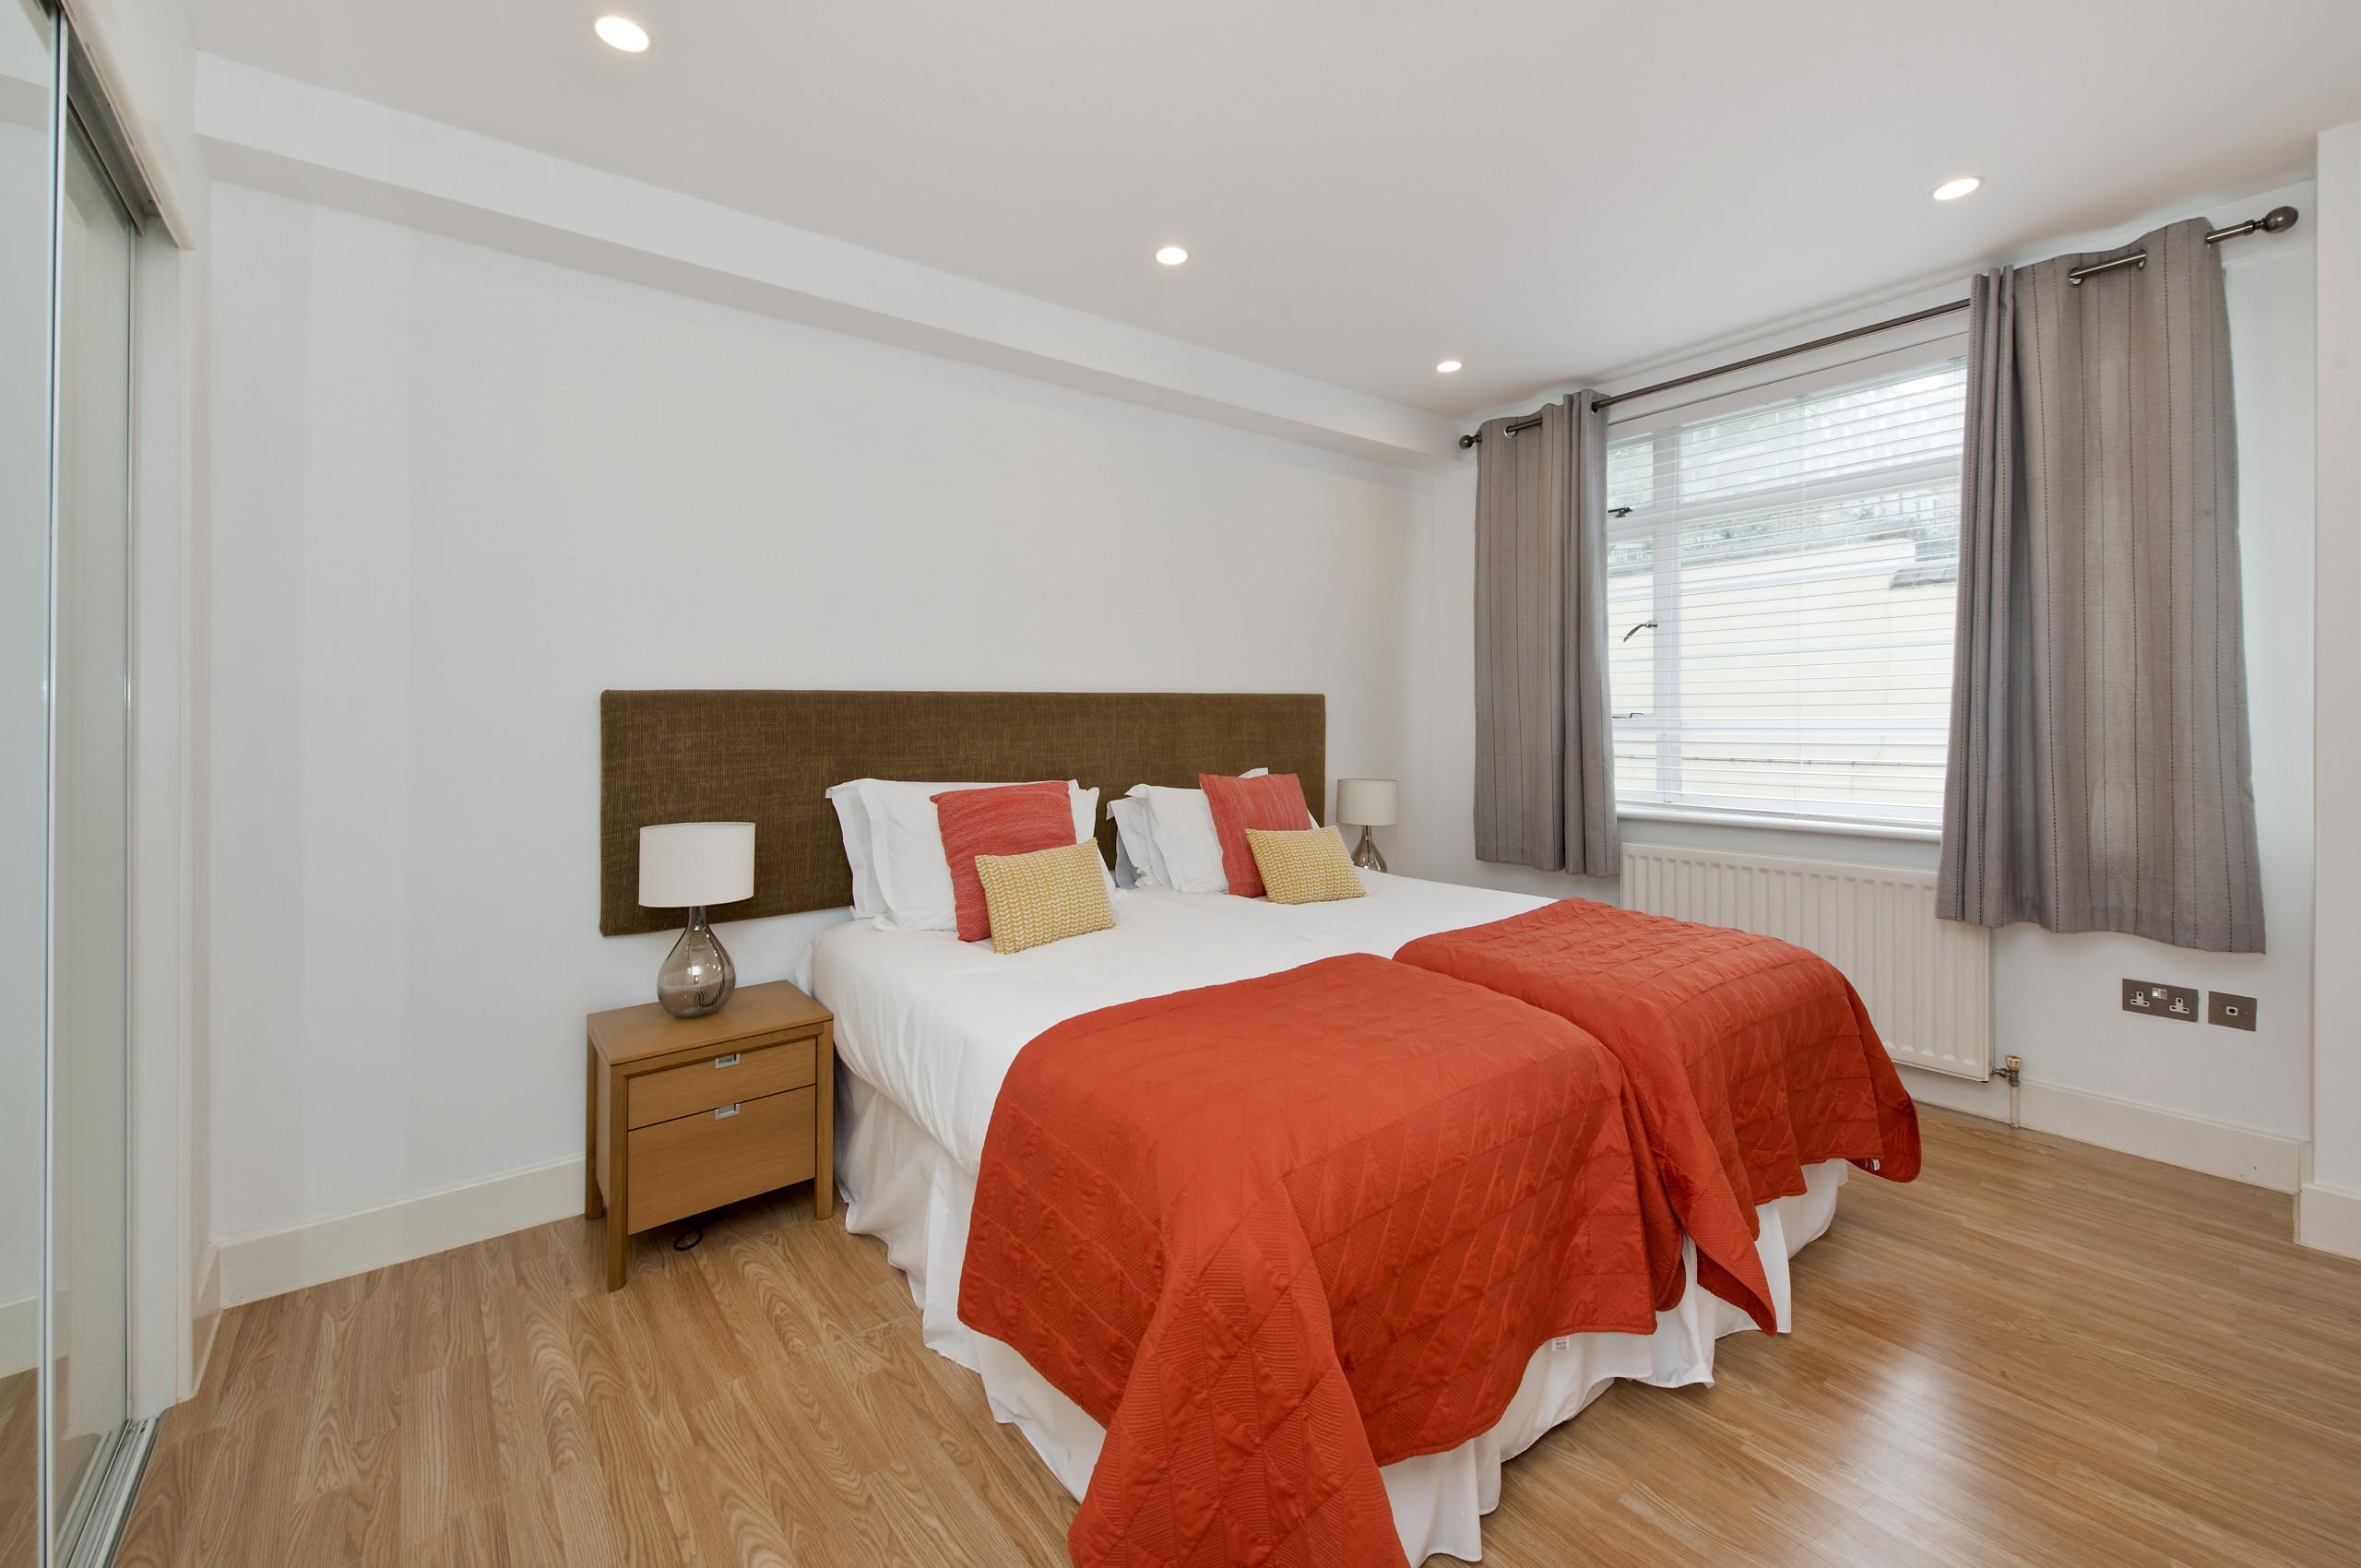 Property Image 2 - Luxury Family Home in Chelsea